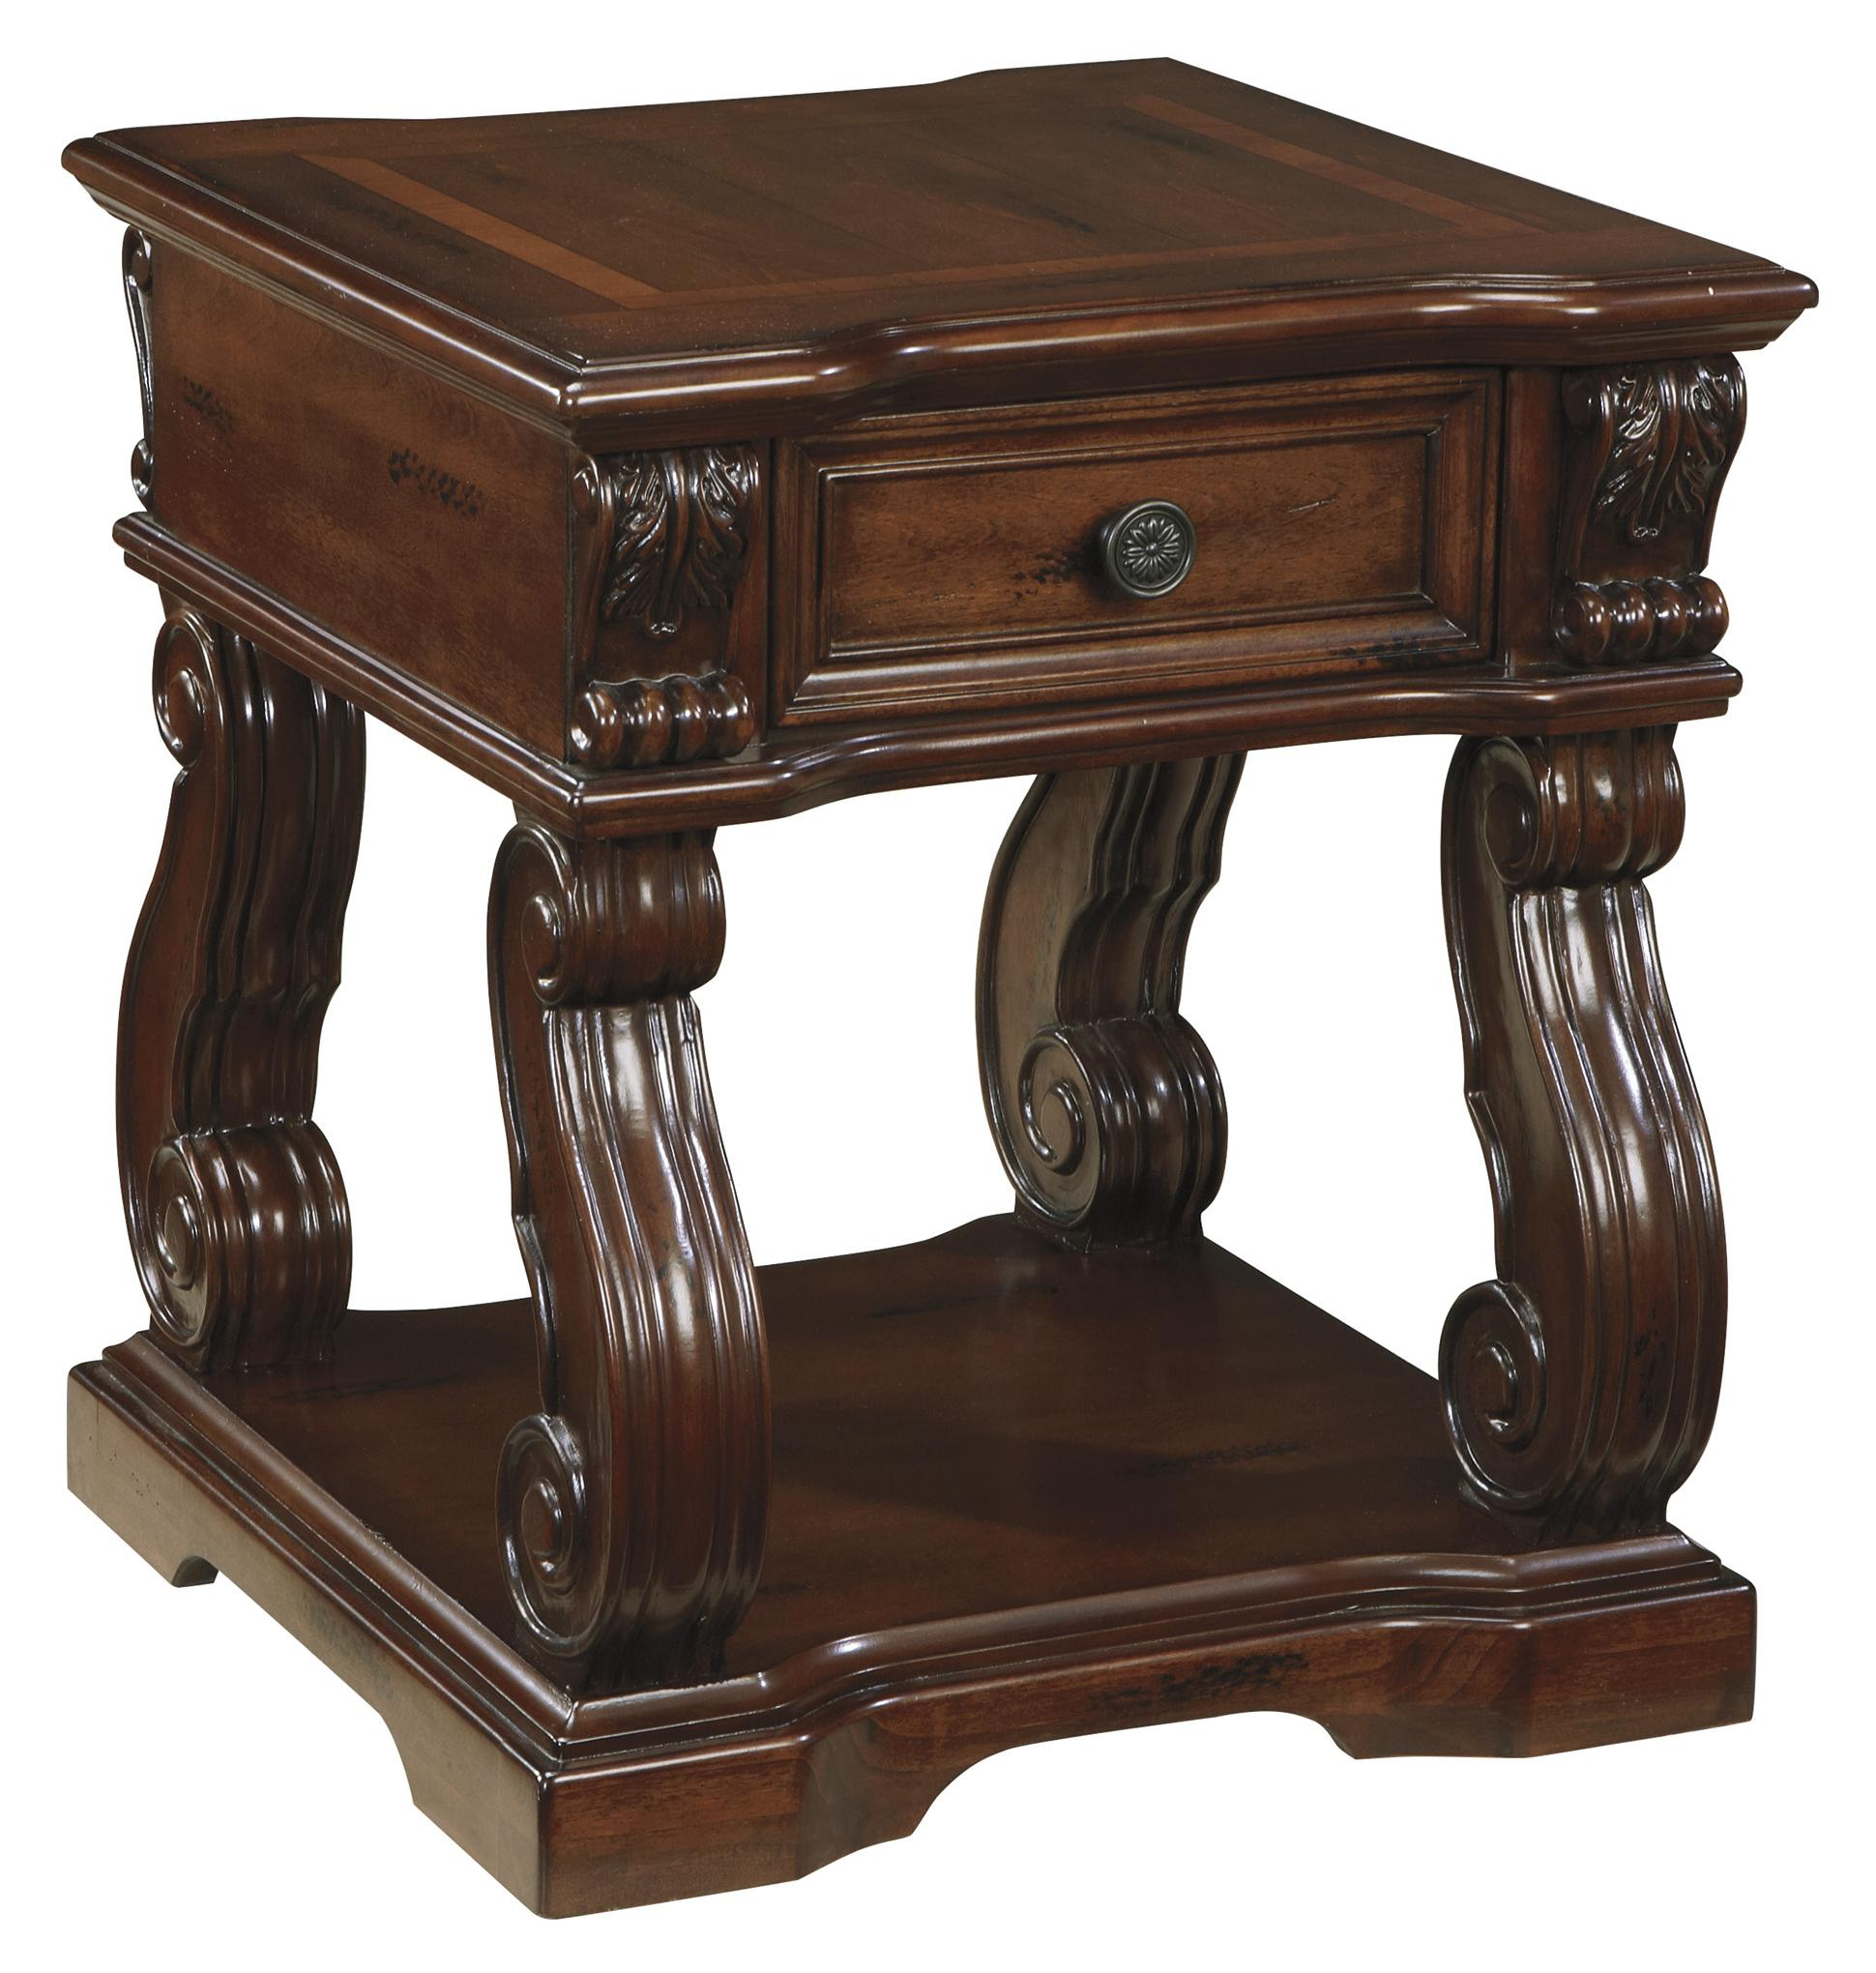 Signature Design by Ashley Alymere Square End Table - Item Number: T869-2